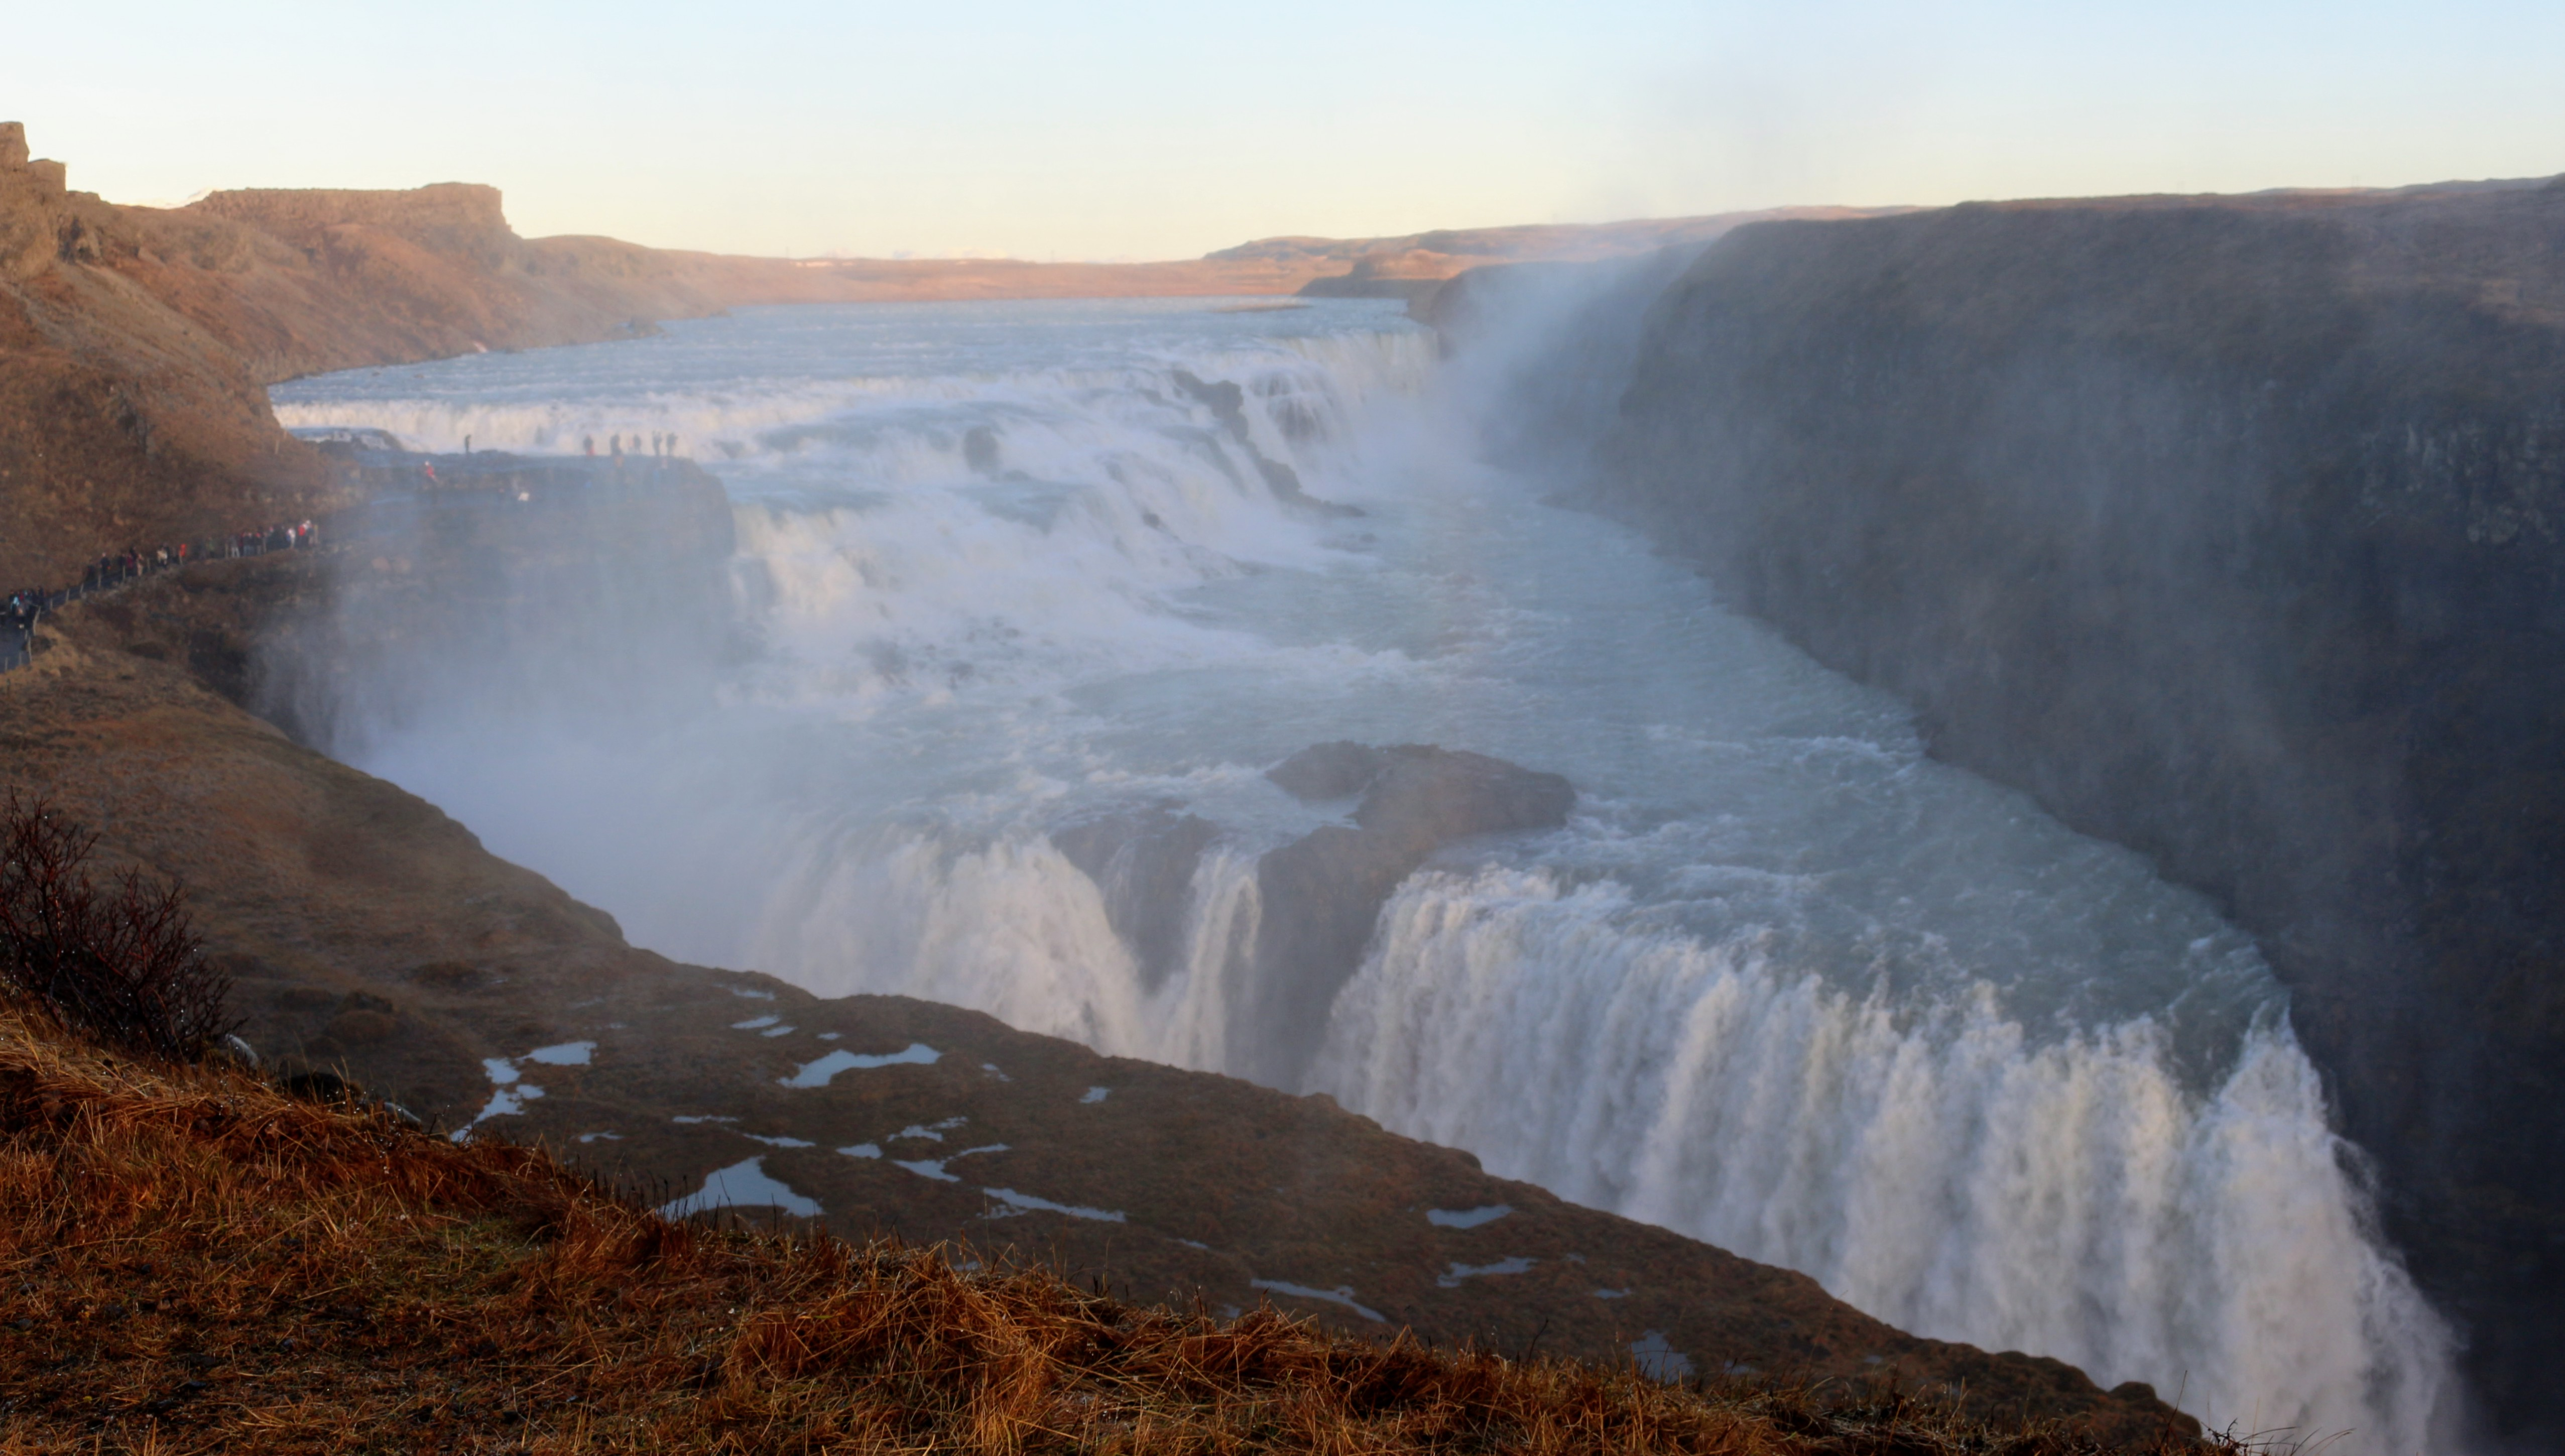 This is the incredible Gullfoss Waterfall in Iceland